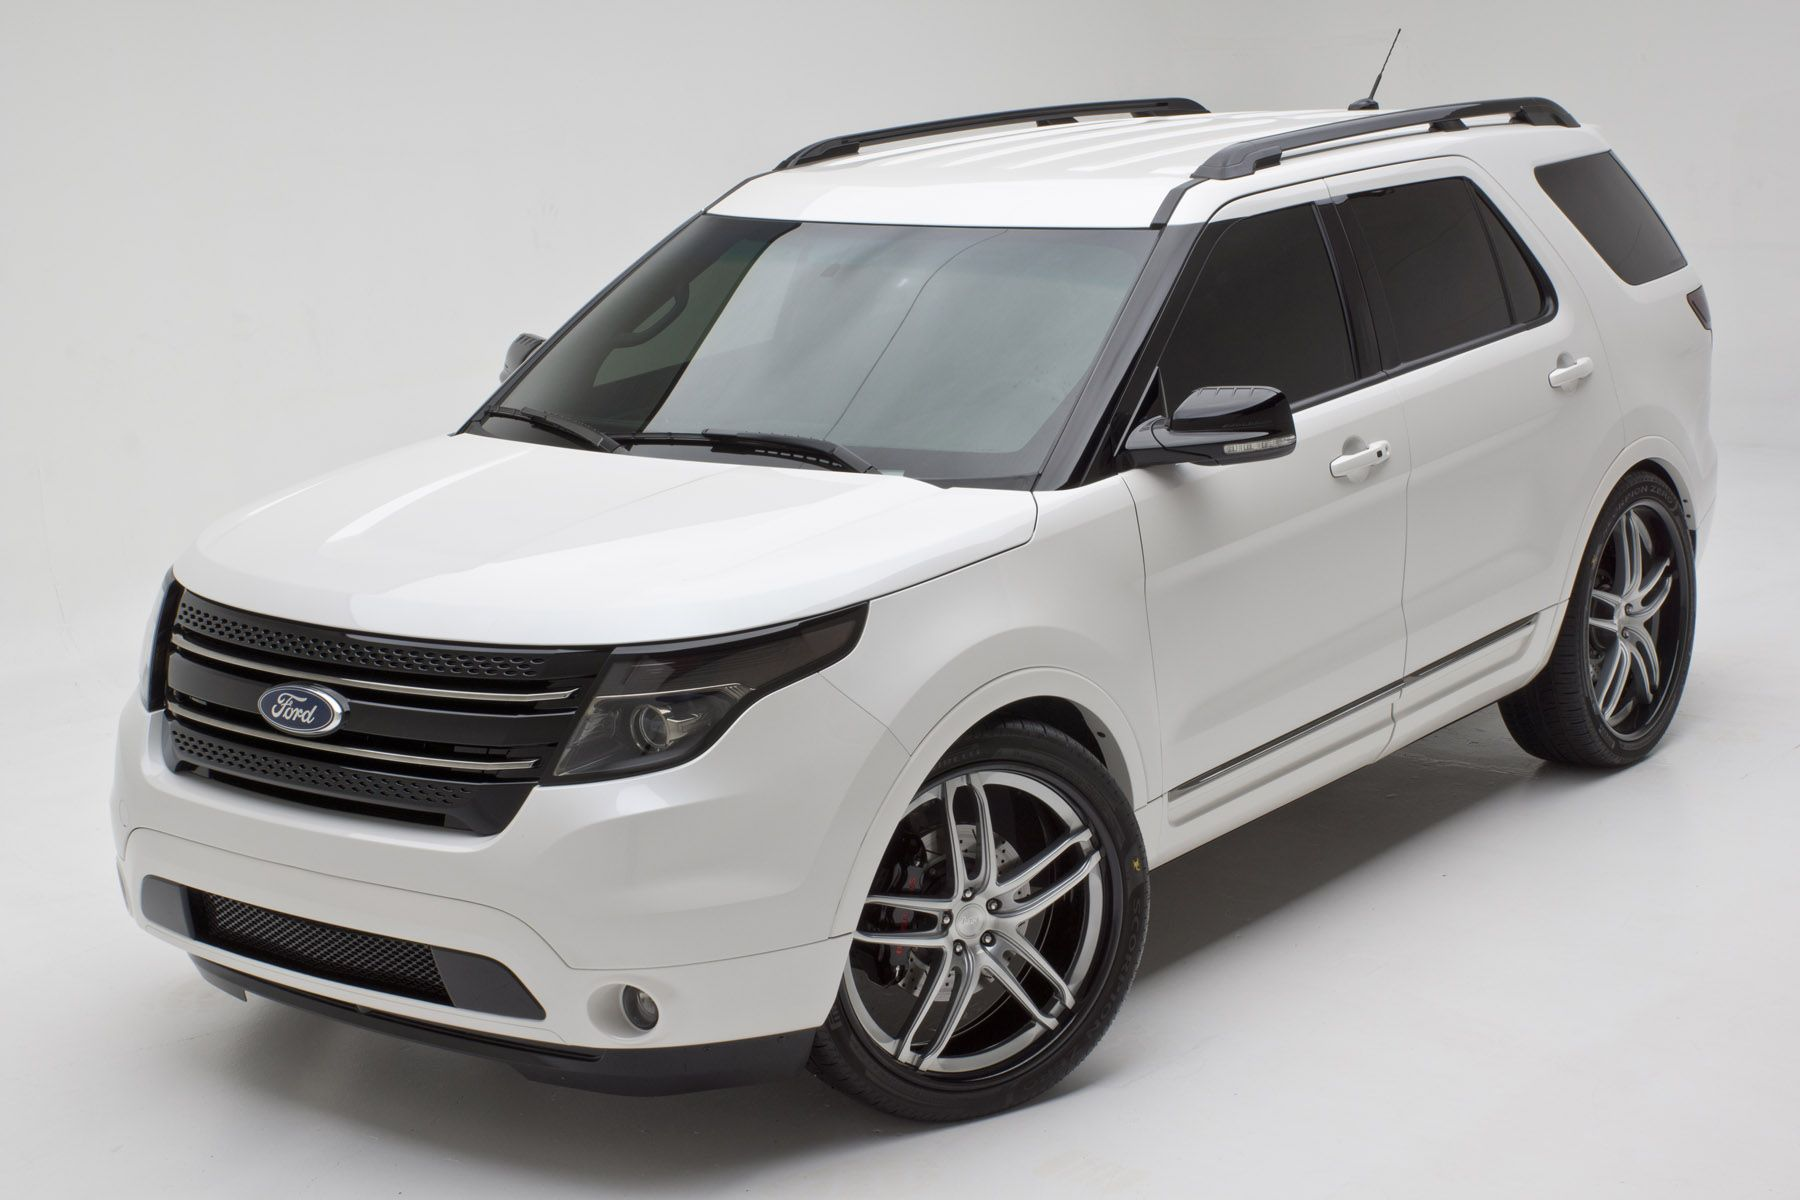 2012 ford explorer limited by dso eyewear exterior basf pearl tri coat white finished - Ford Explorer 2012 Black